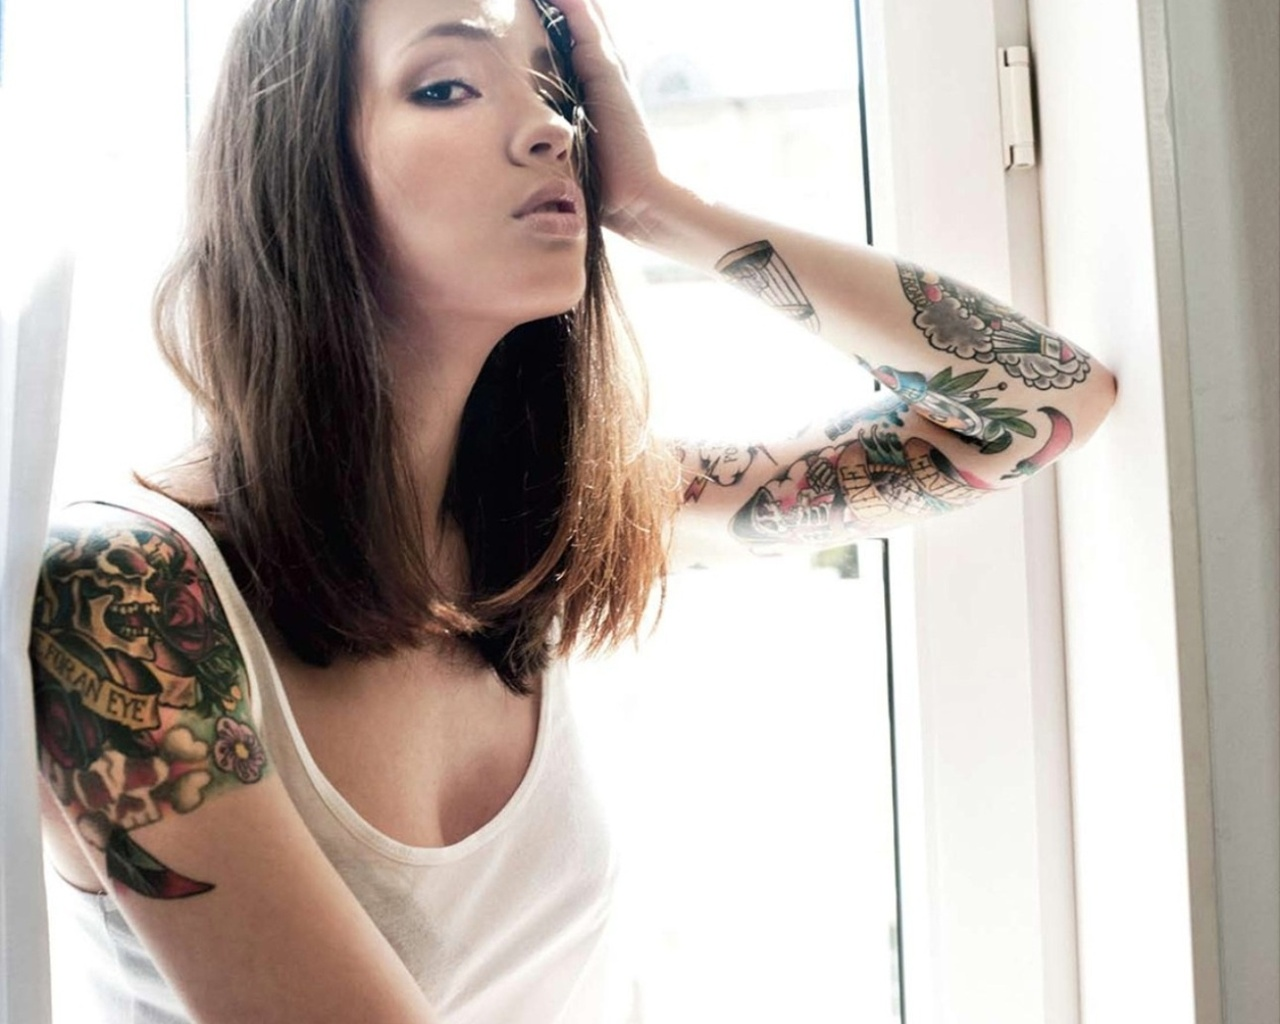 http://www.tattoo-catalog.ru/wallpapers/girl2/tattoo_girl_wallpaper27.jpg